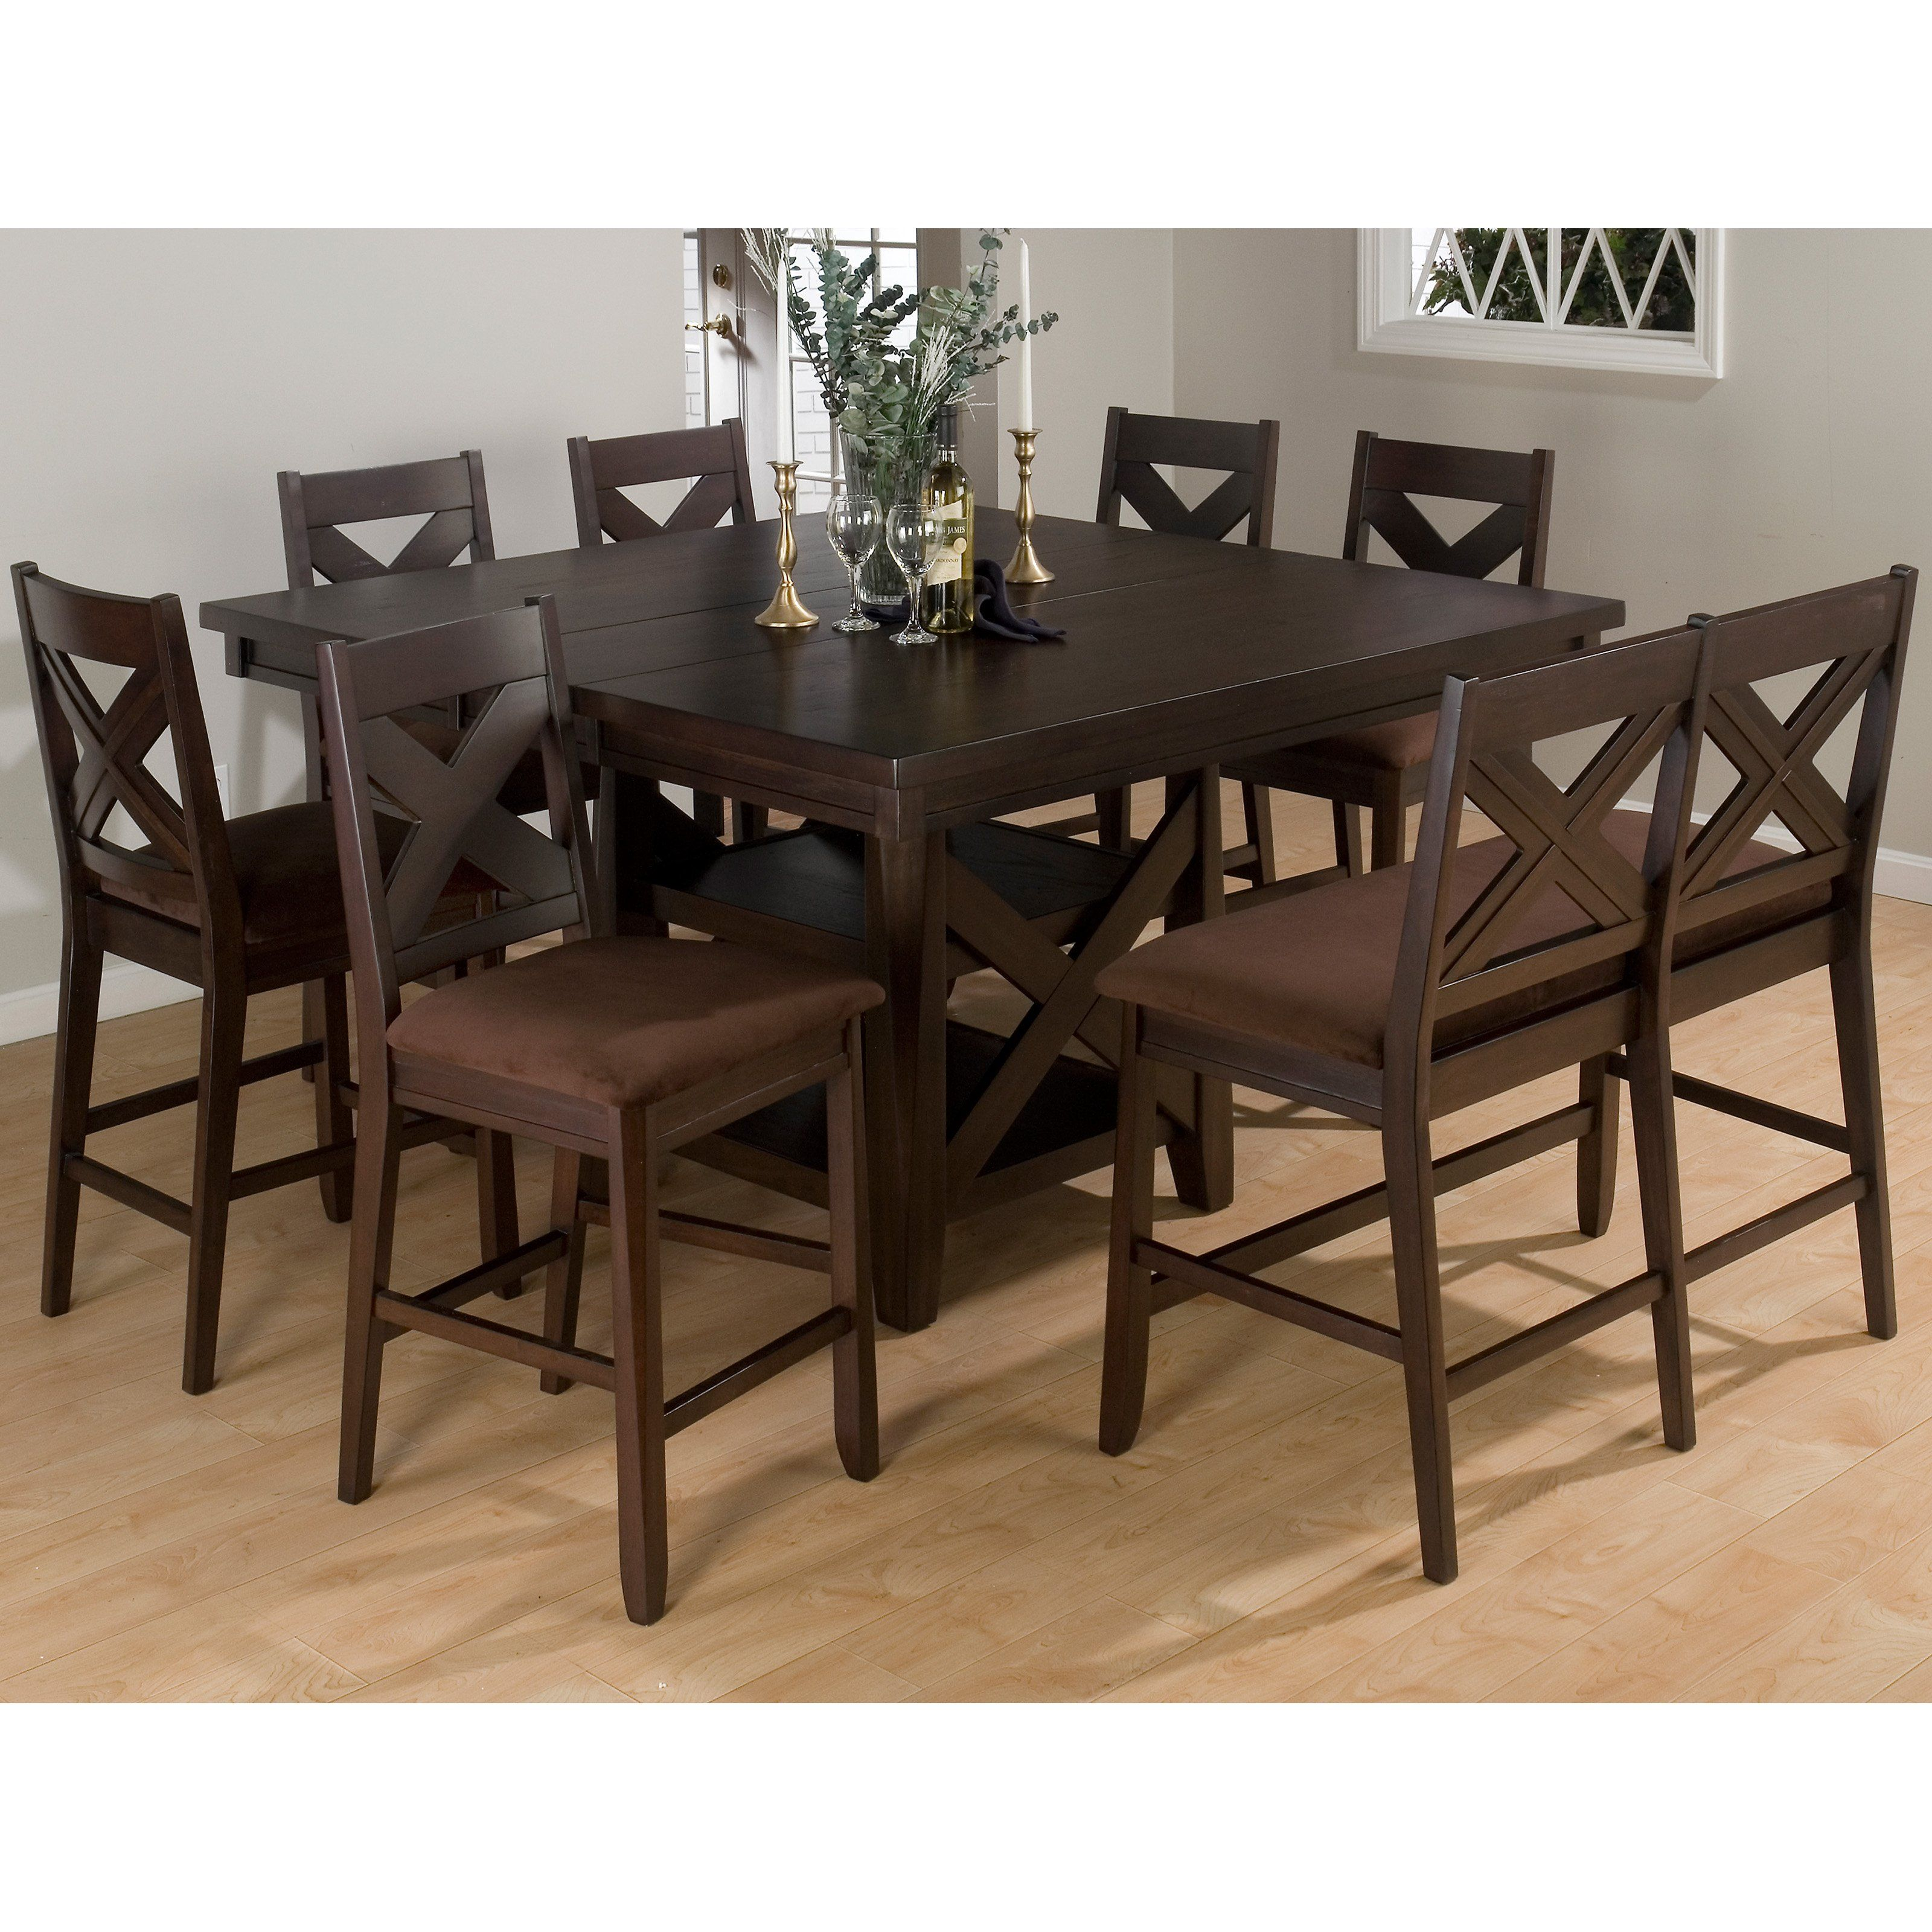 Jofran Chadwick Counter Height Table With Corner Bench And: Stonington 8 Pc. Counter Height Dining Set With Bench